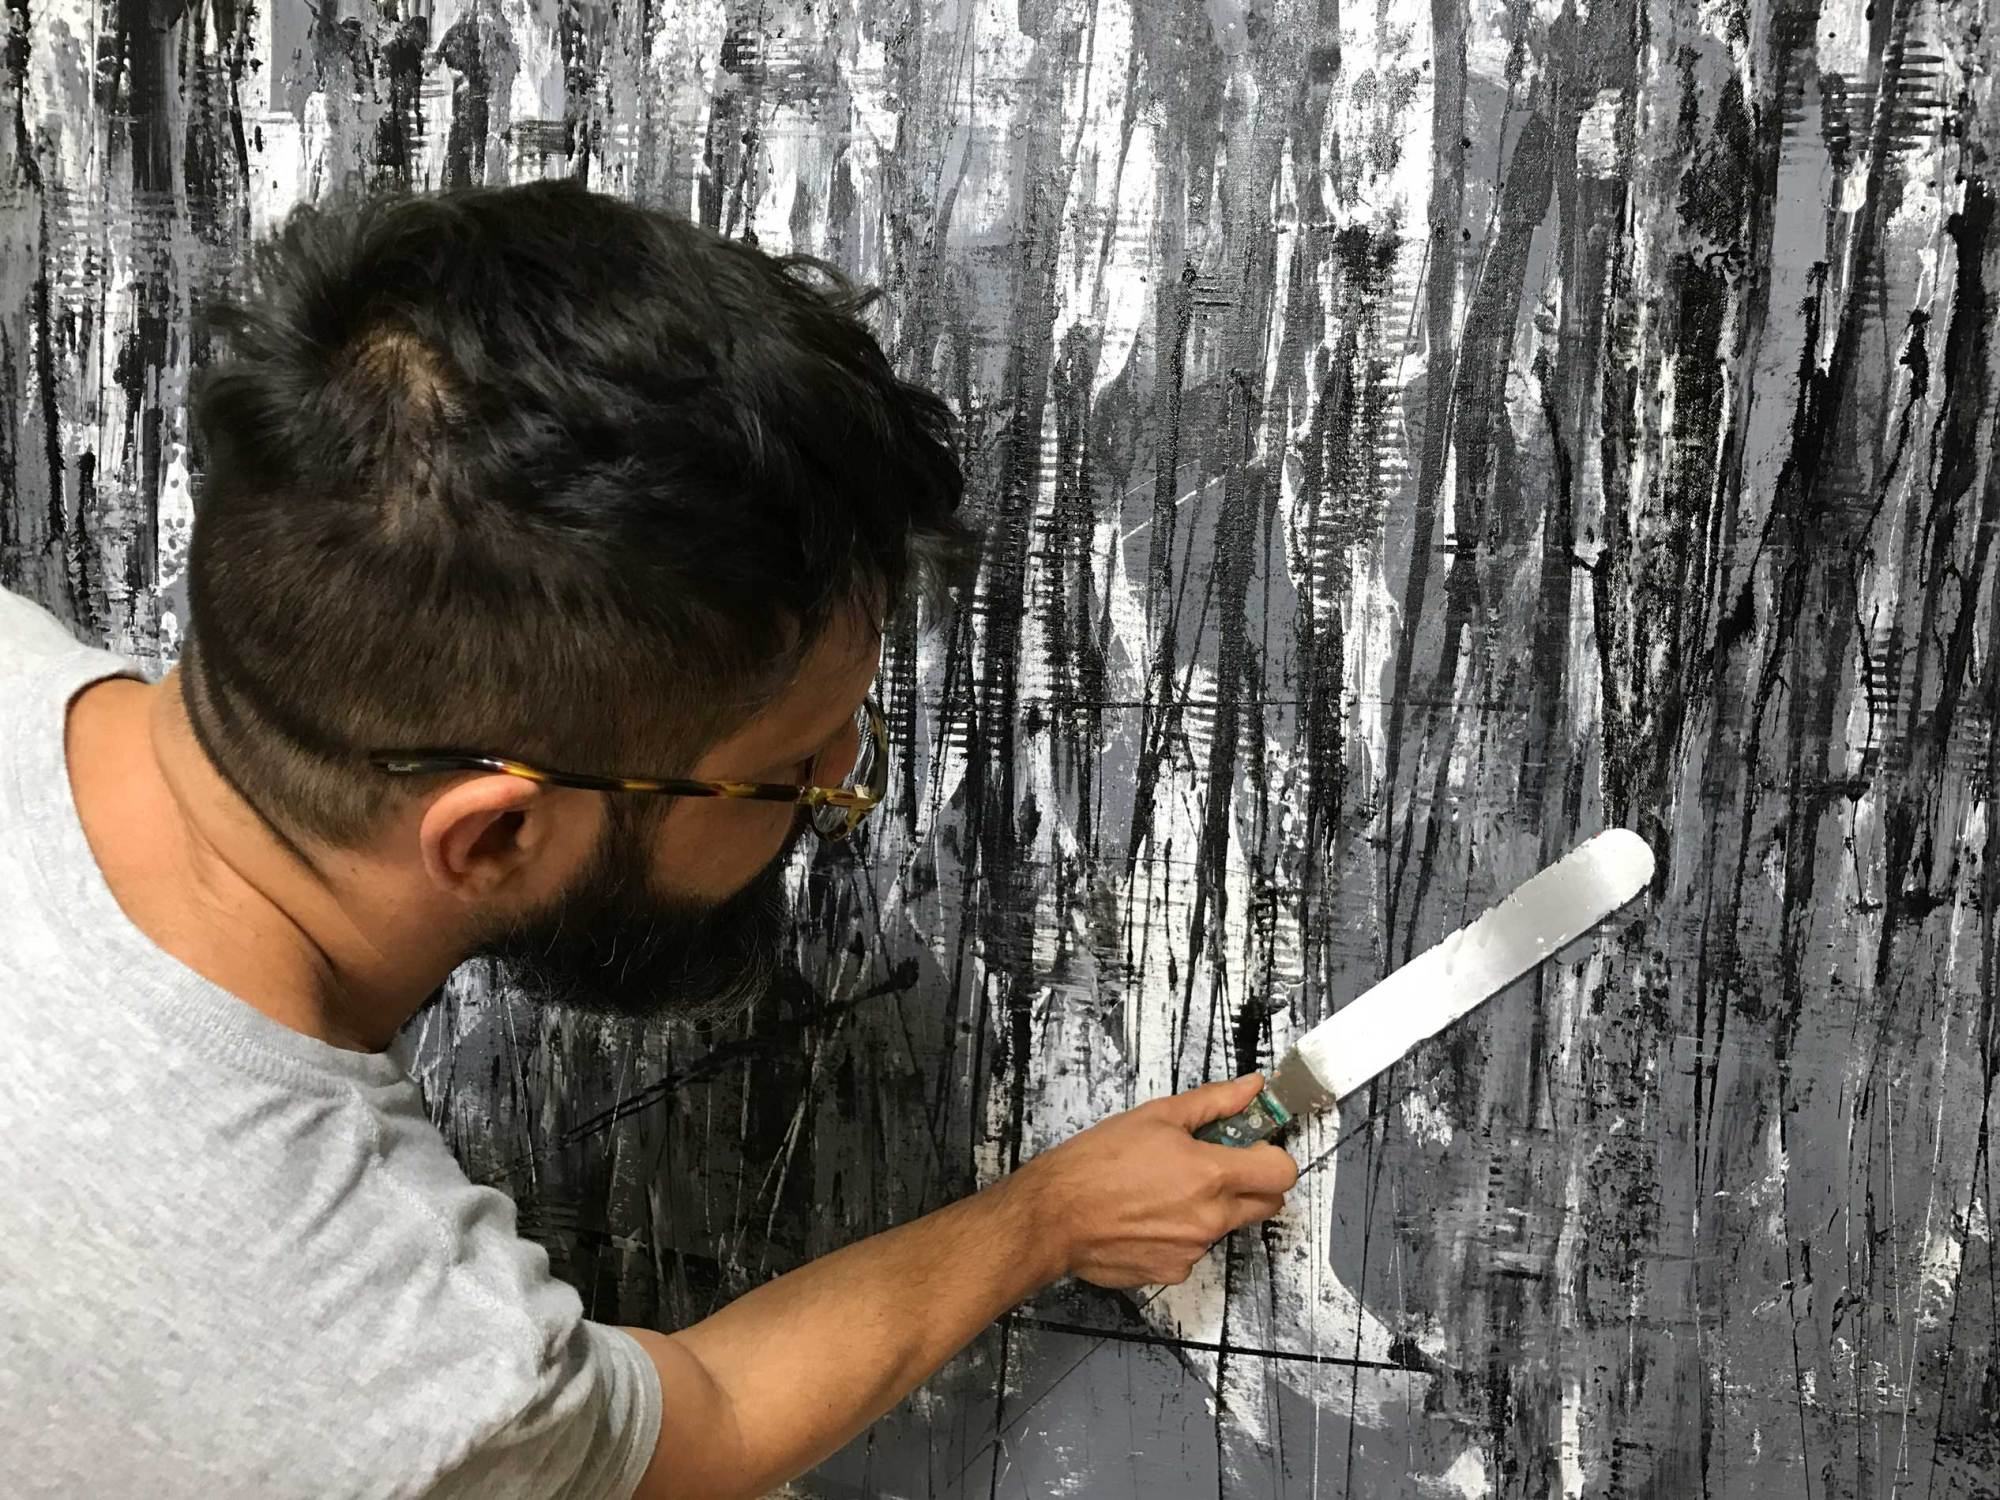 Artist Nestor Toro working on December which is a monochromatic statement work in shades of Grey